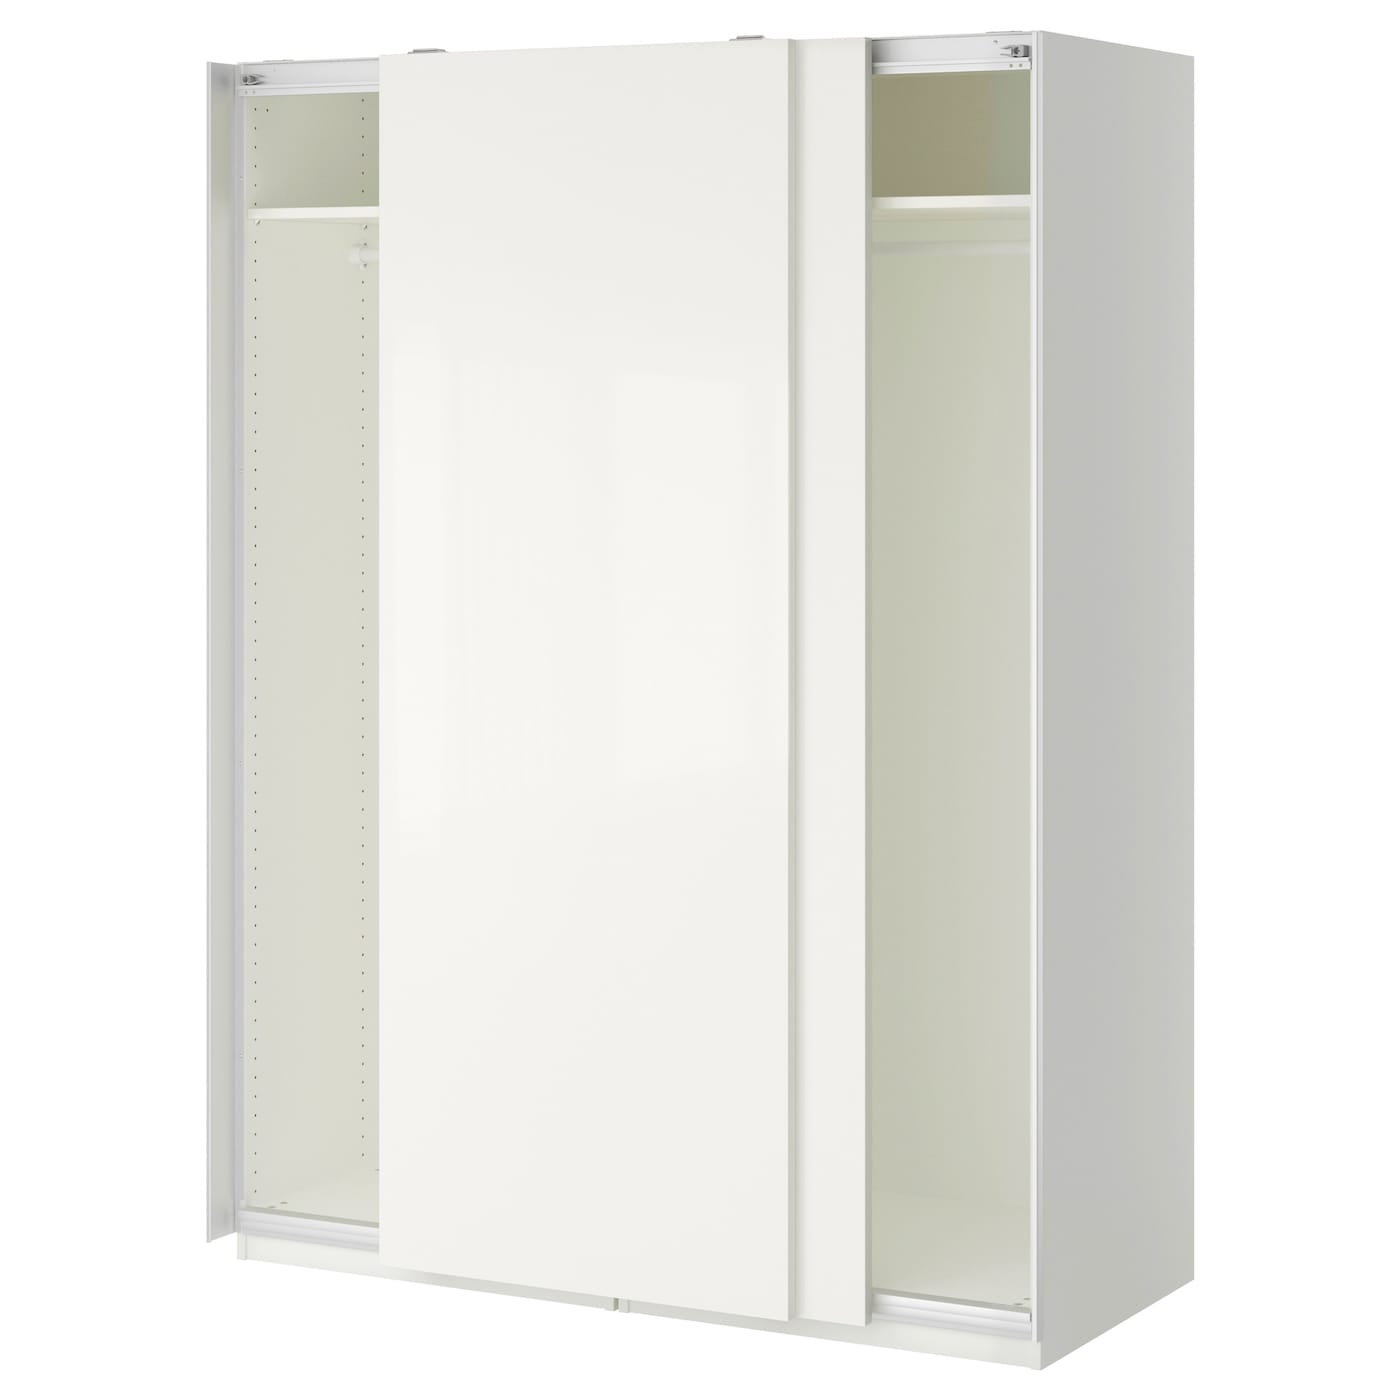 pax wardrobe white hasvik white 150x66x201 cm ikea. Black Bedroom Furniture Sets. Home Design Ideas